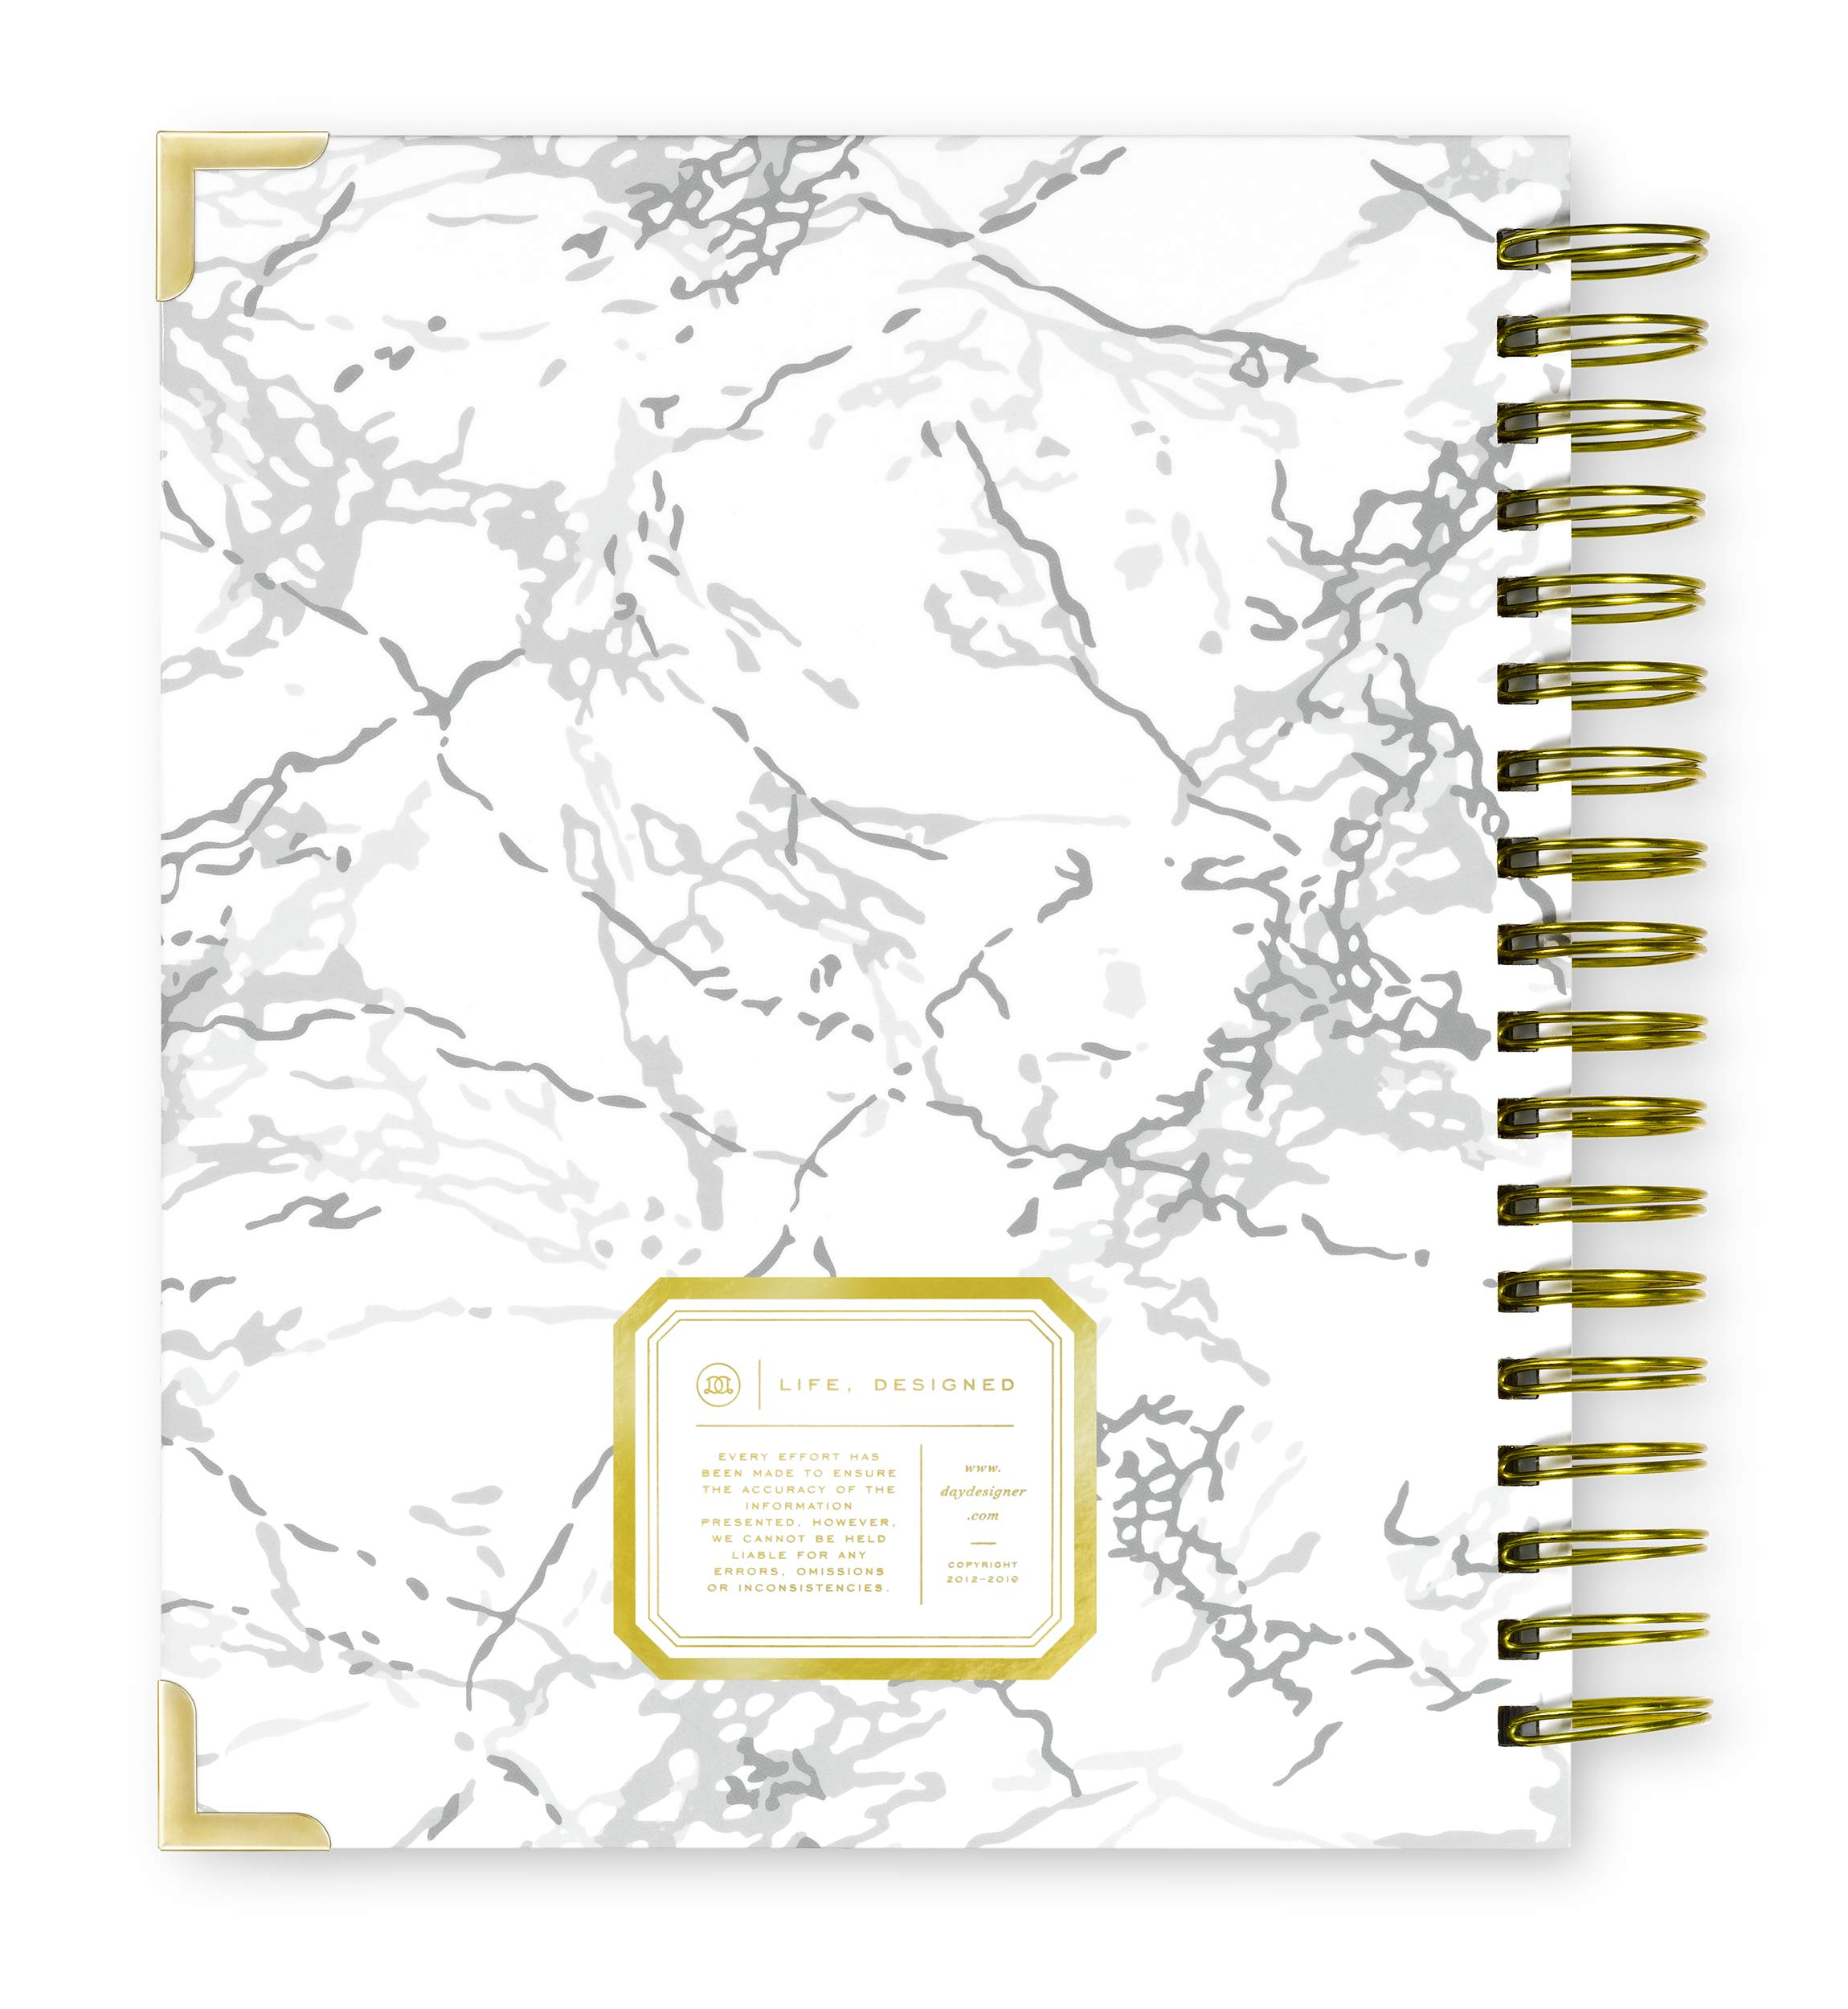 Day Designer 2019-2020 Daily Life Planner and Agenda, Hardcover, Twin-Wire Binding, 9'' x 9.75'', White Marble by Day Designer (Image #7)